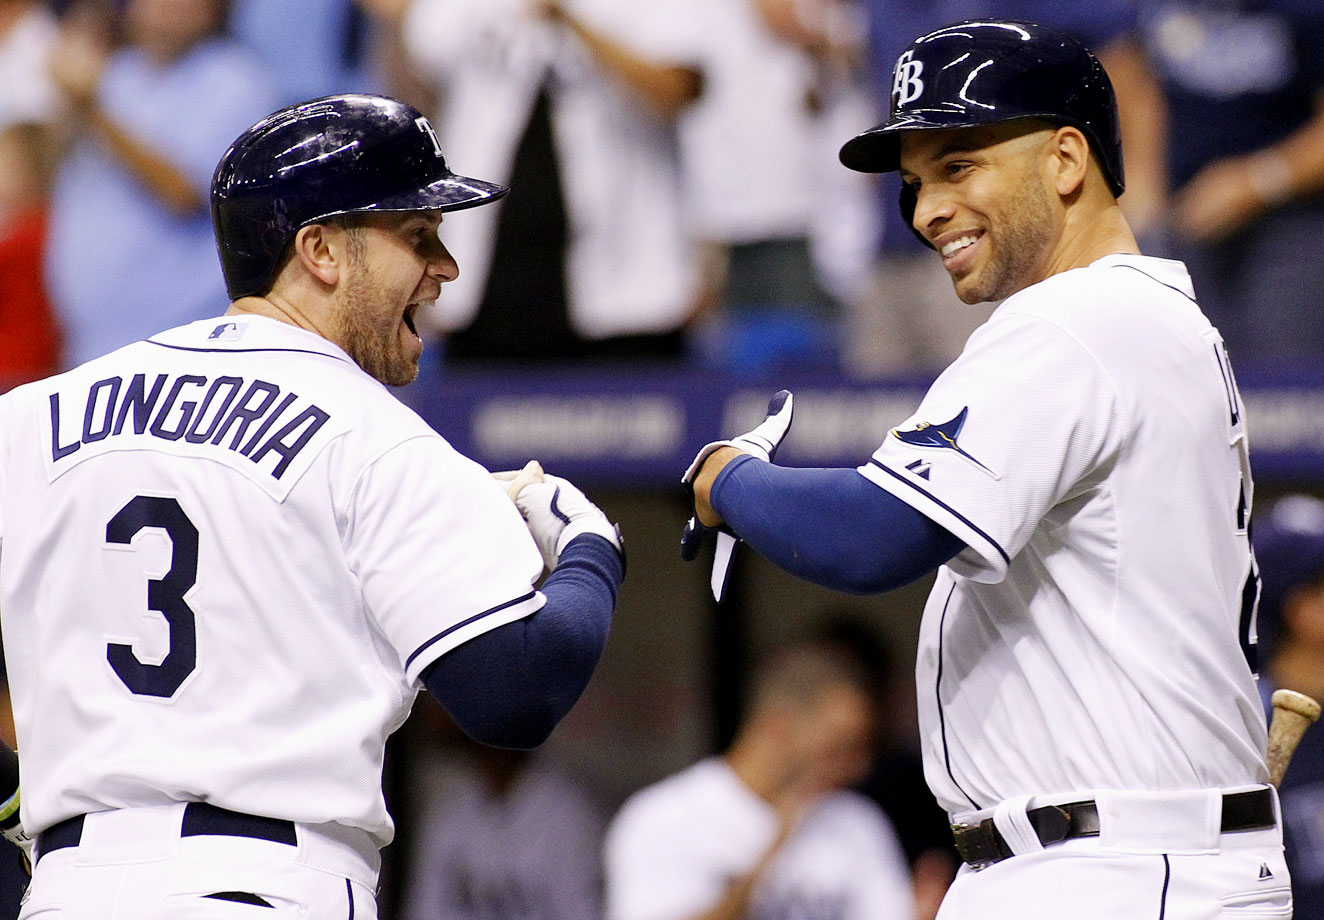 Highest salaries: Evan Longoria ($11,000,000), James Loney ($8,666,667)